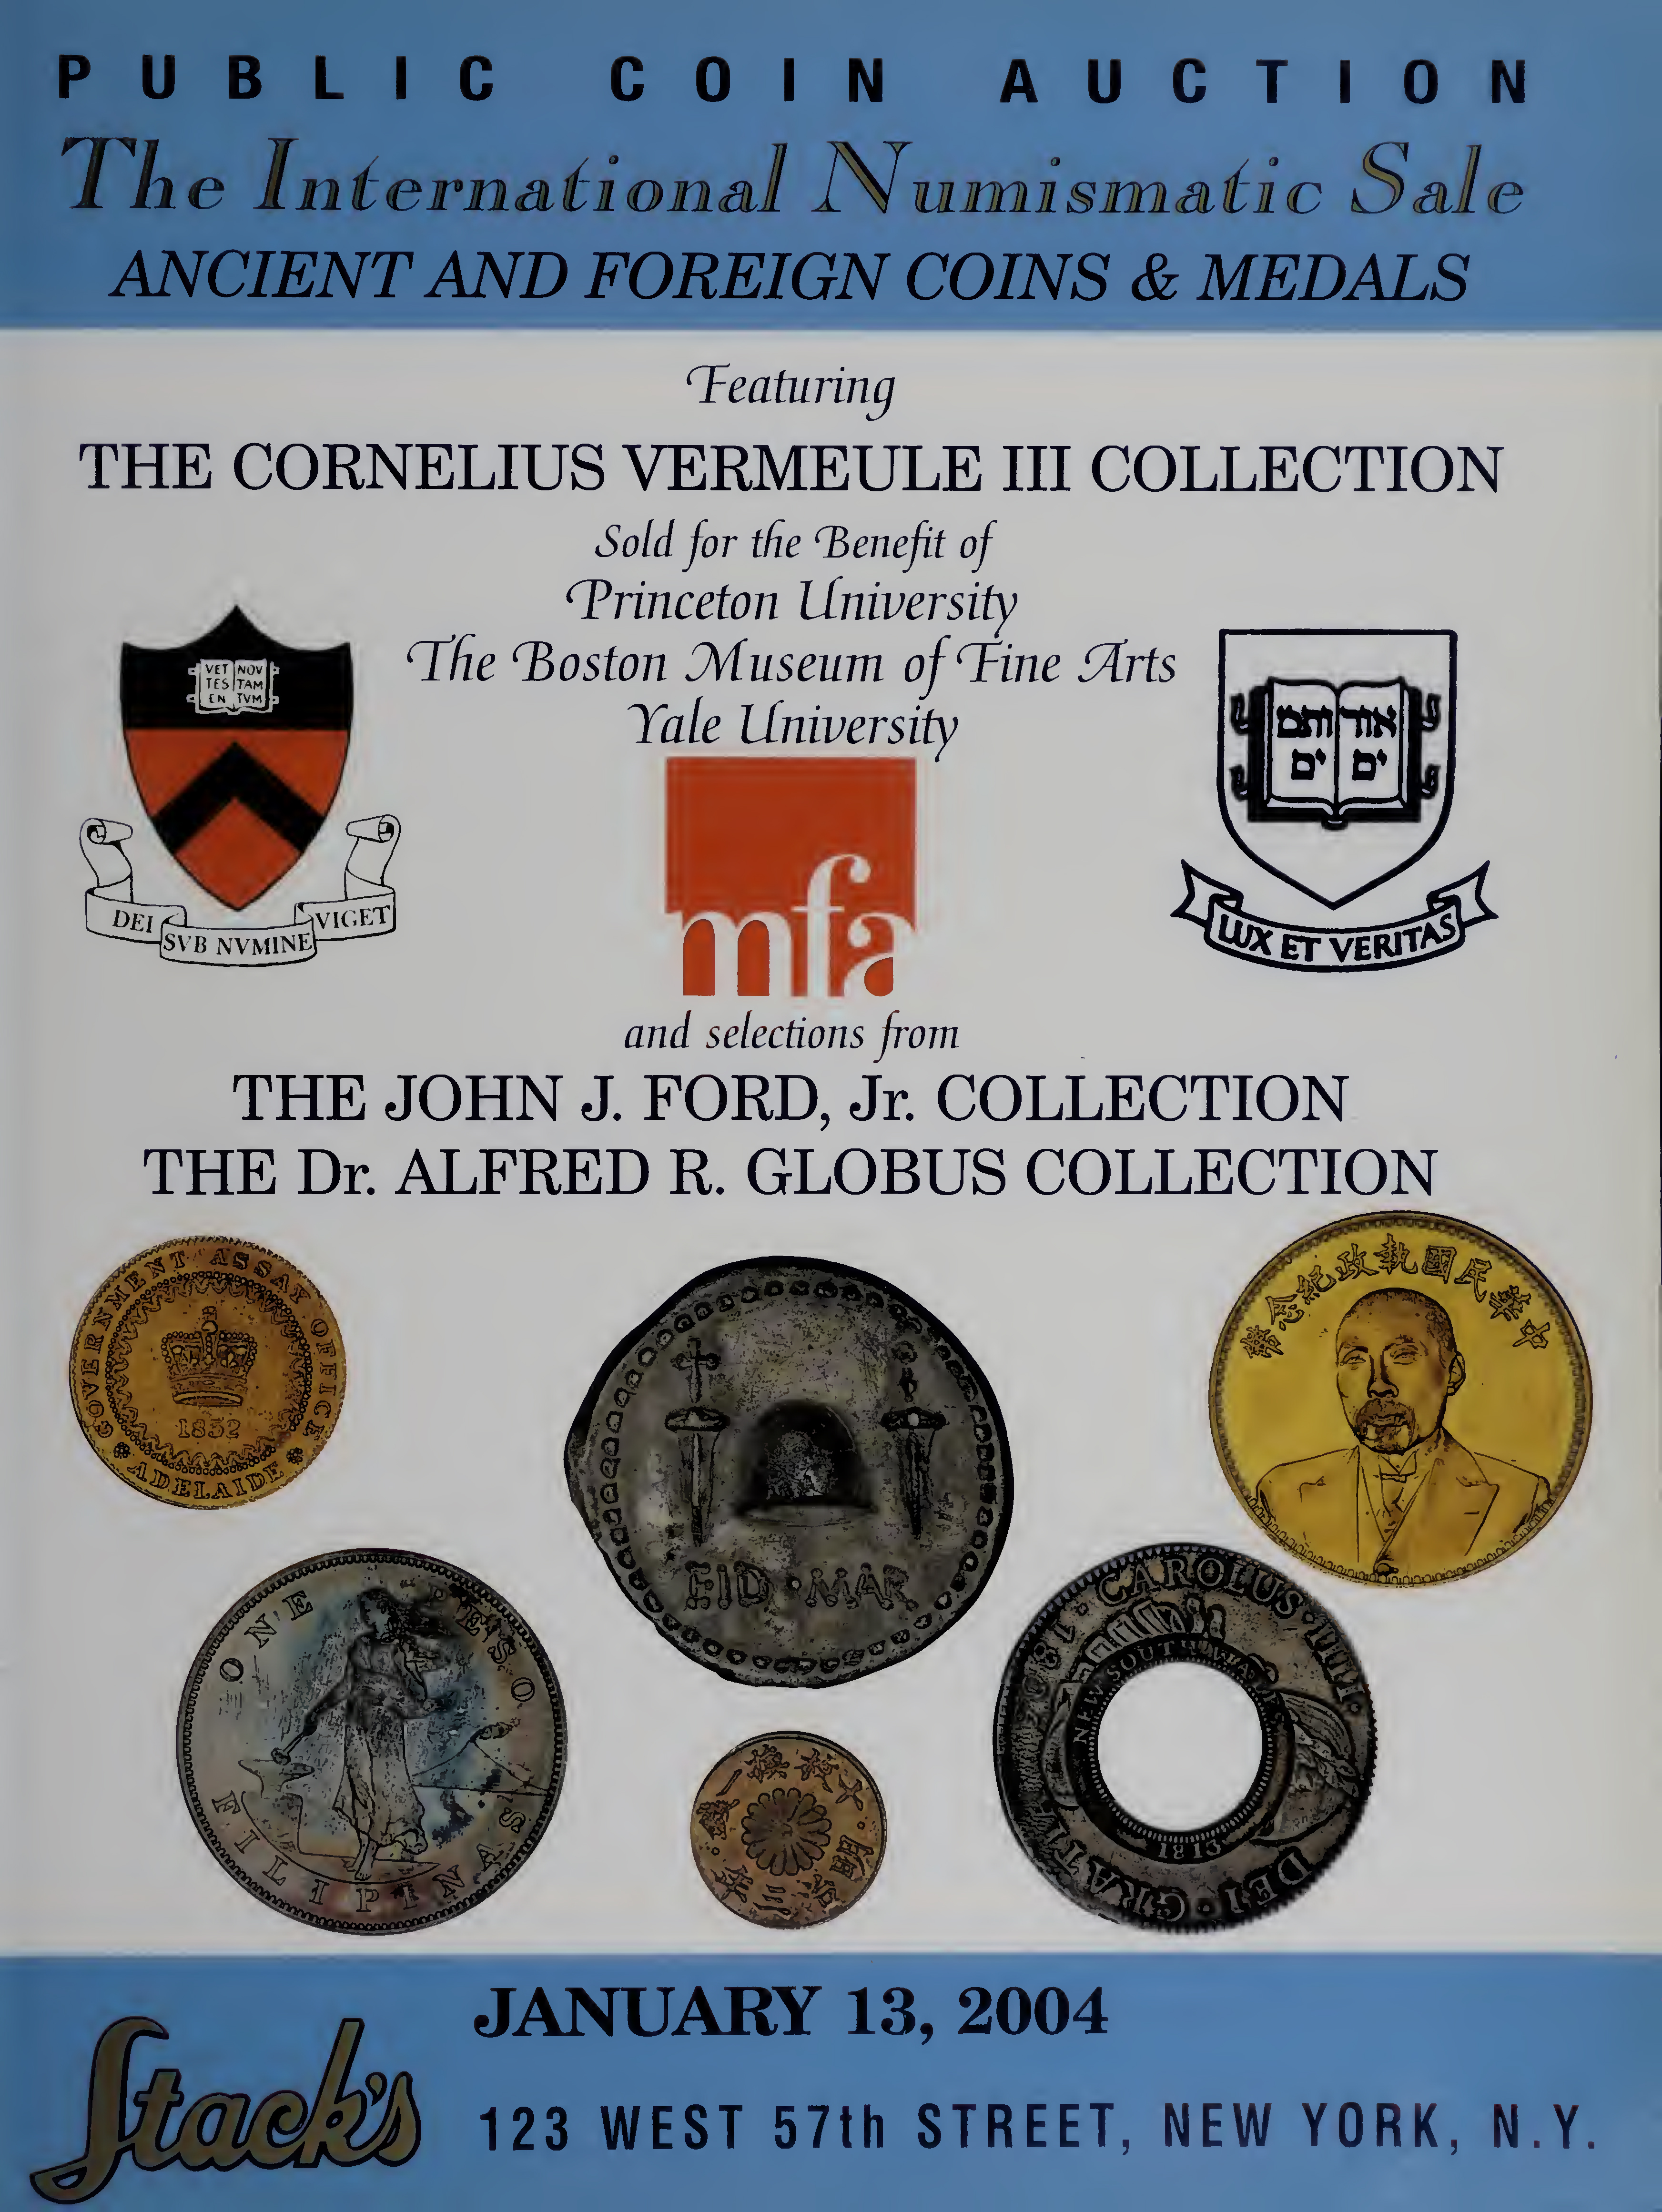 The International Numismatic Sale Ancient and Foreign Coins & Medals Featuring the Cornelius Vermeule III Collection Sold for the Benefit of Princeton University, The Boston Museum of Fines Arts, Yale University and Selections from The John J. Ford, Jr. Collection, The Dr. Aflred Globus Collection